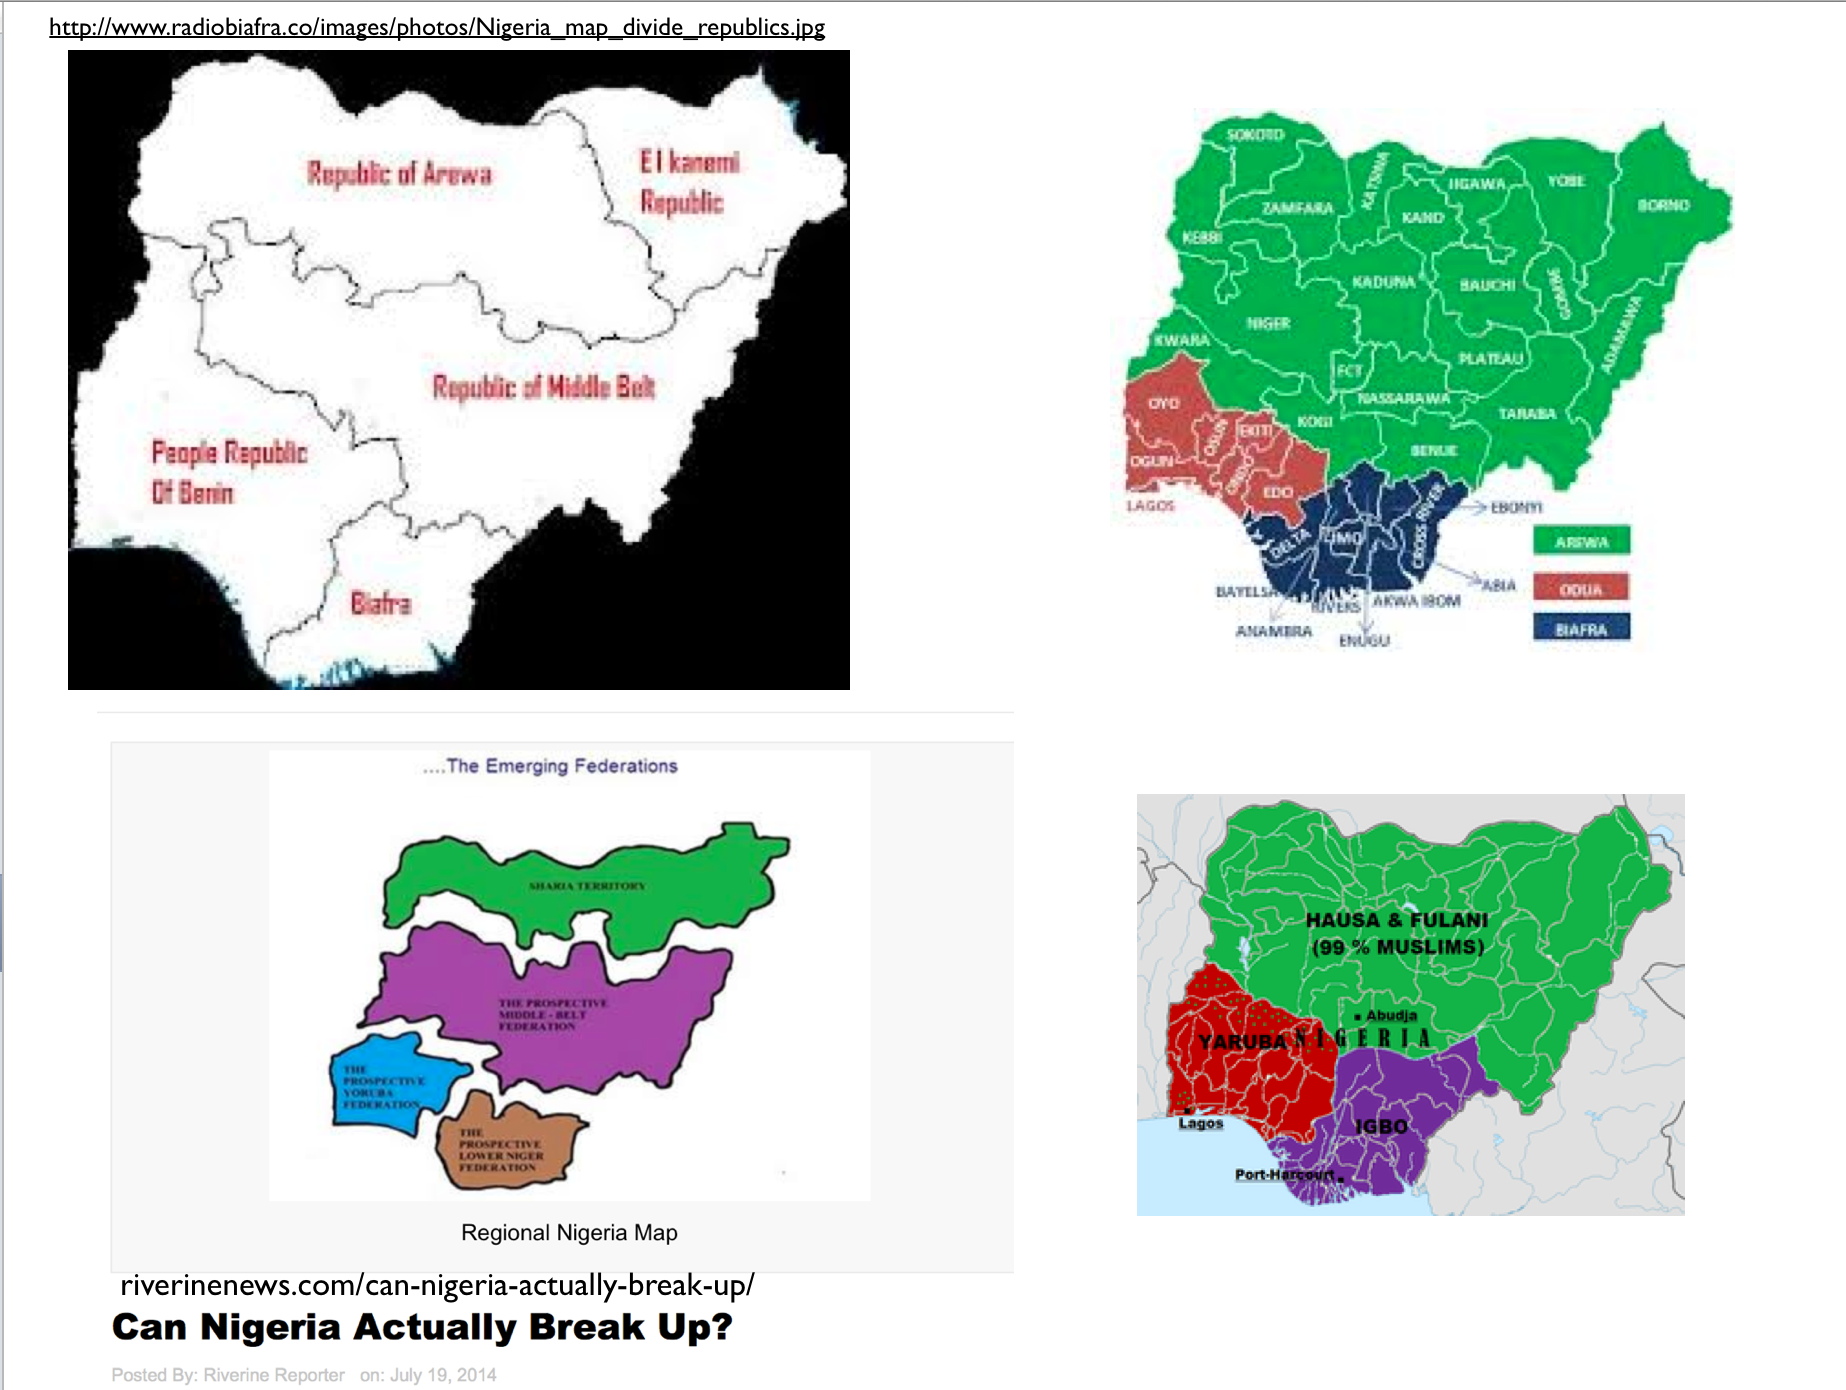 three major regions of nigeria The report also divides the world into six major regions and looks at how each region's religious composition is likely to change from 2010 to 2050, assuming that current patterns in migration and other demographic trends continue 8.